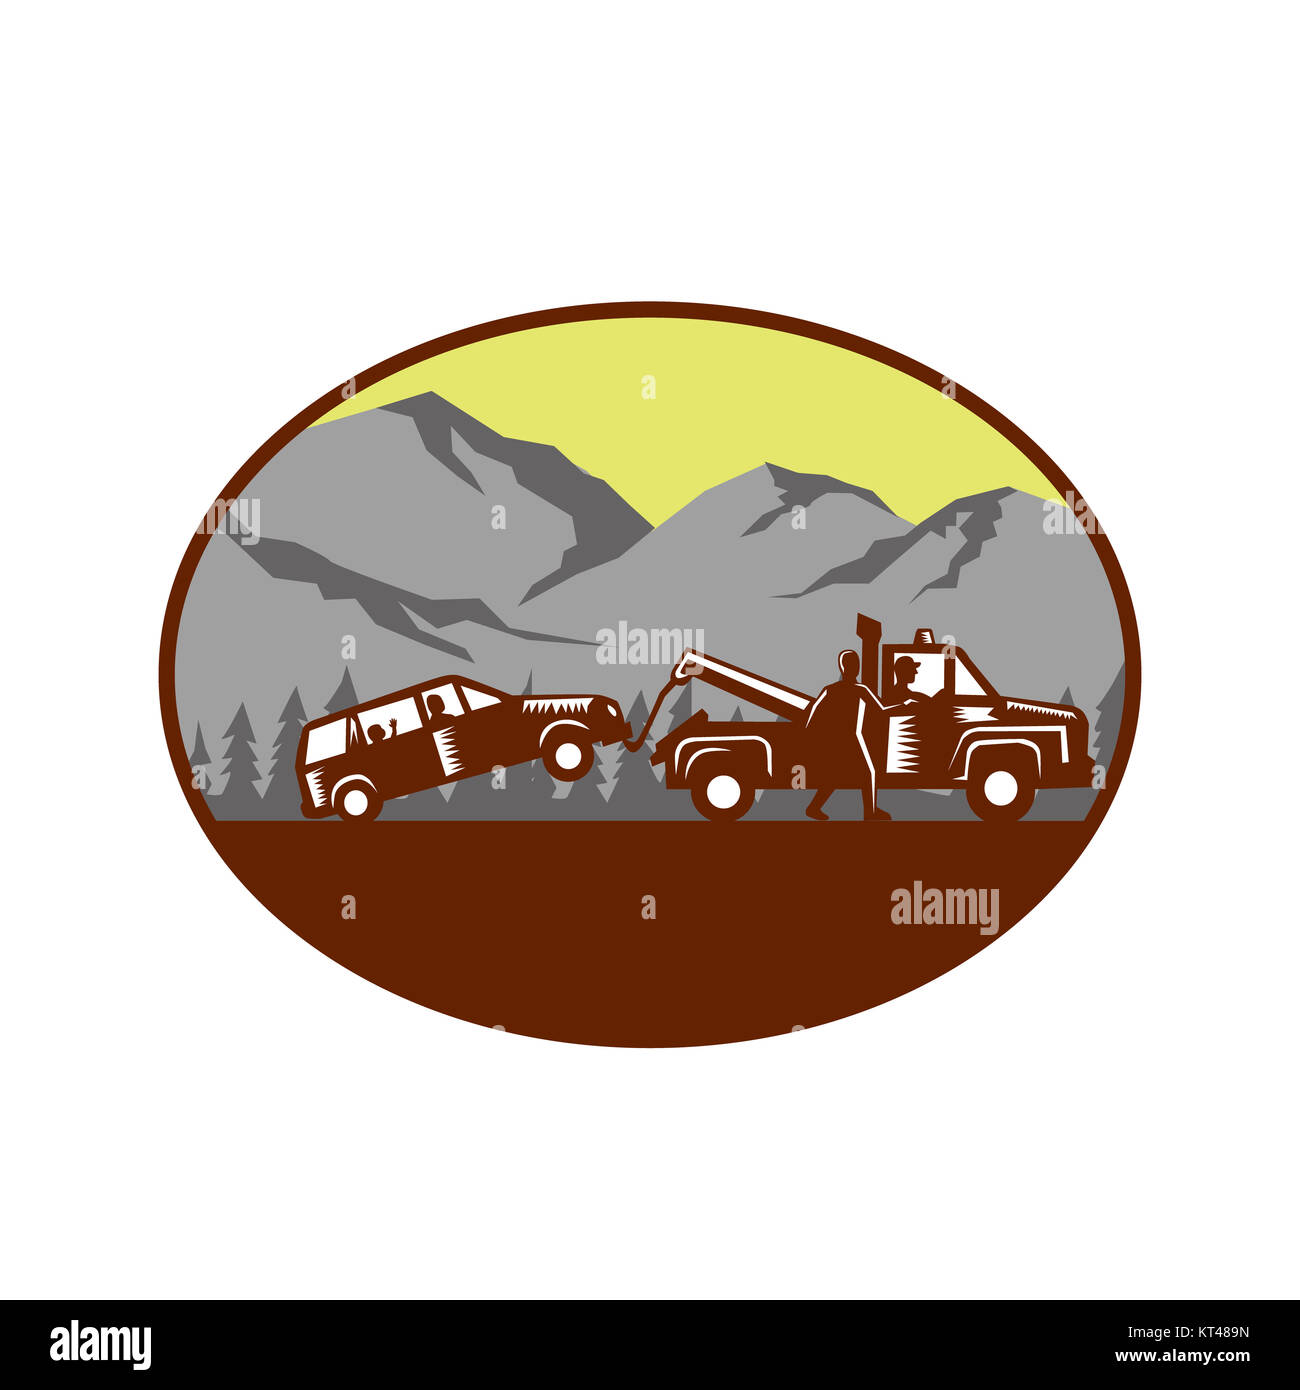 Car being towed Away Mountains Oval Woodcut - Stock Image